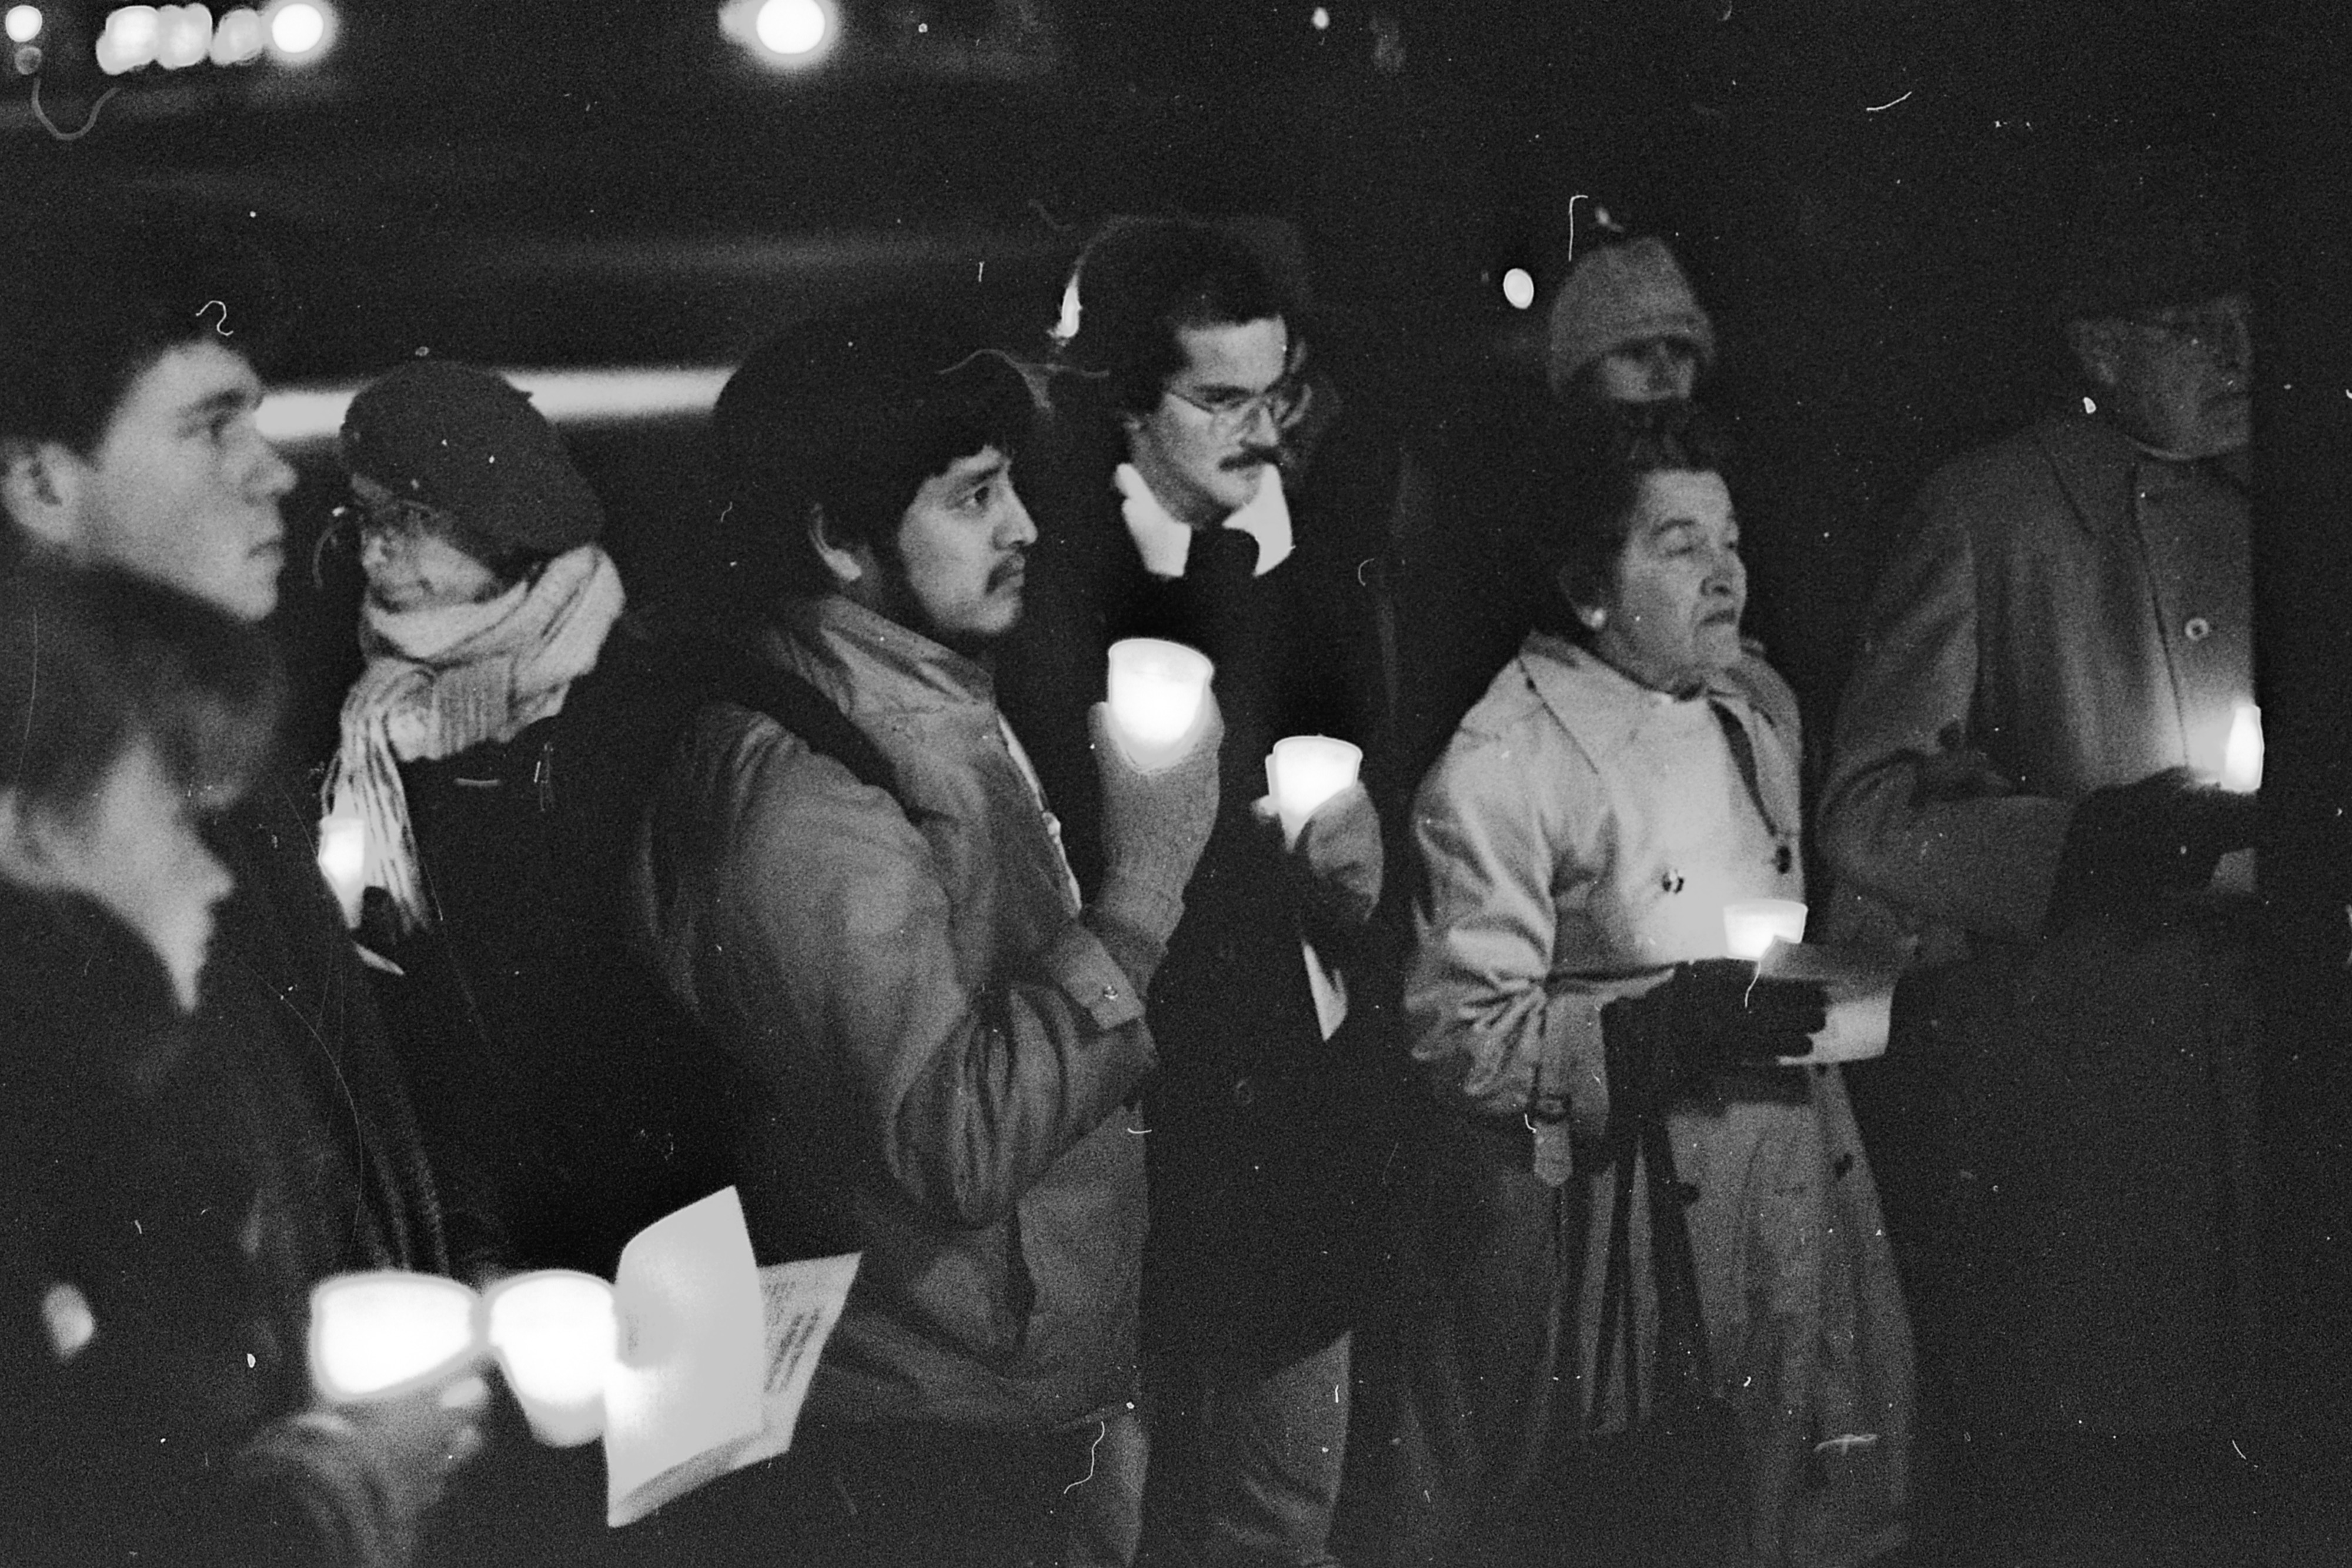 Protesting Nuclear Weapons at Candlelight Vigil, University of Michigan Diag, November 1986 image